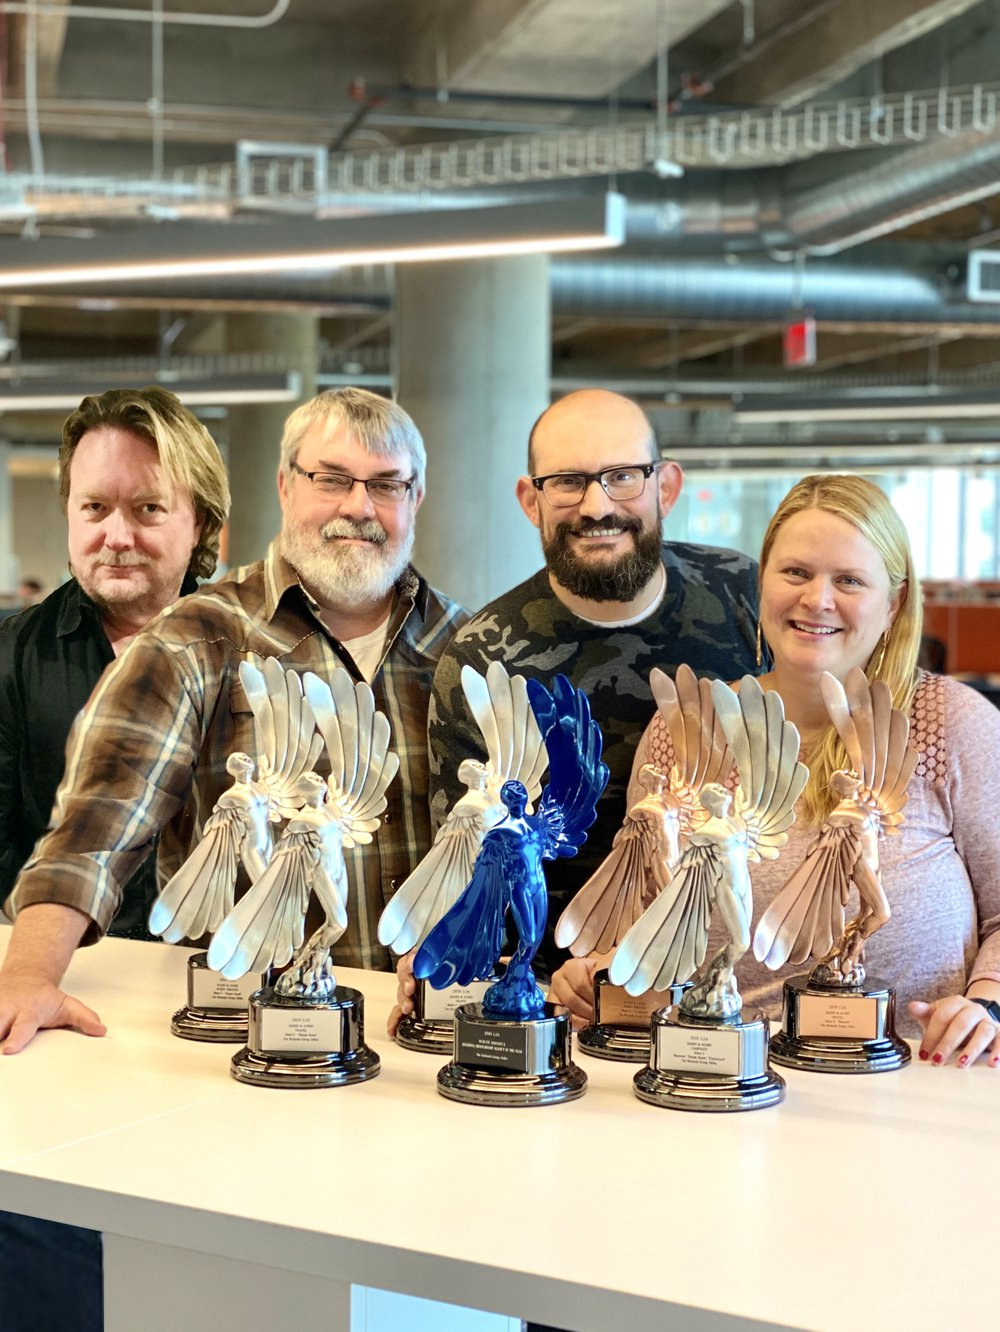 The Richards Group proudly display their Statues, pictured Wendy Mayes, Chris Smith, Bo McCord, and Stuart Hill